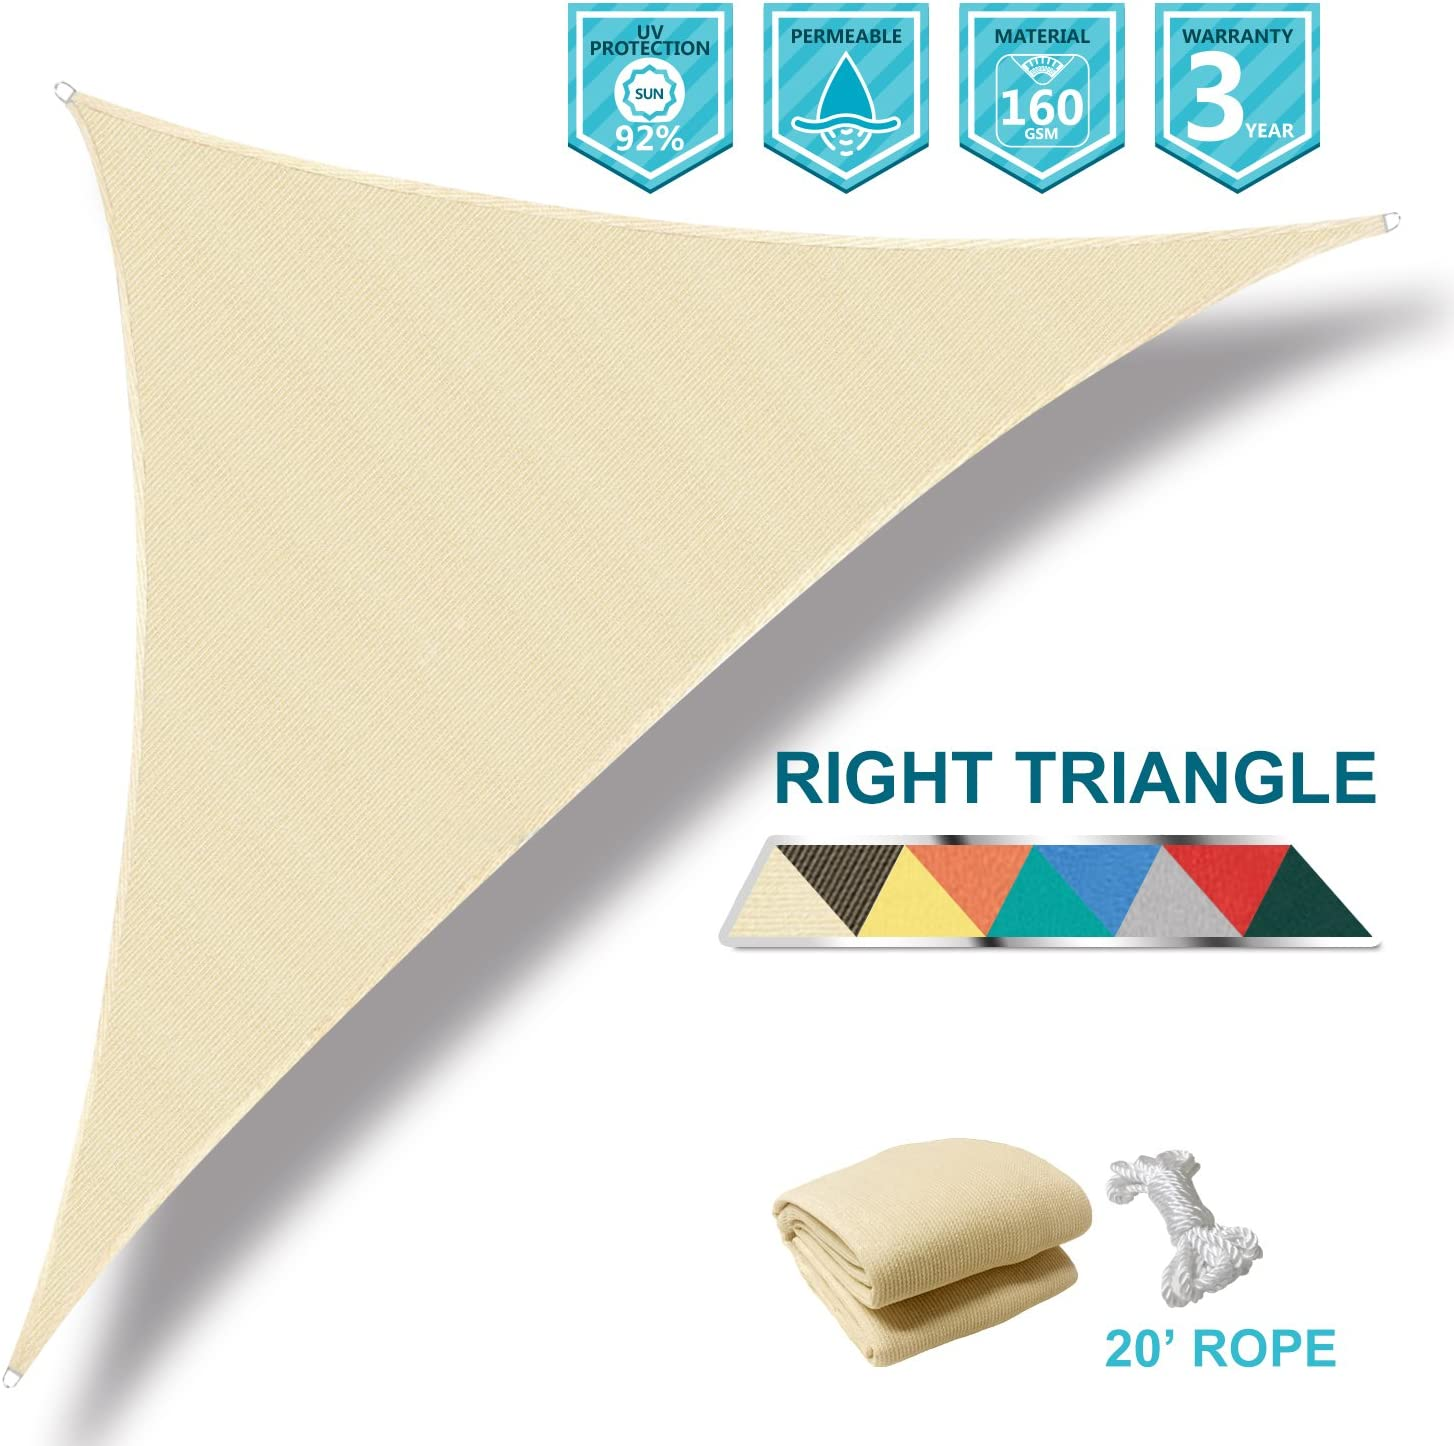 Coarbor 8 x8 x11.3 Right Triangle Beige UV Block Sun Shade Canopy Perfect for Patio Yard Deck Outdoor Garden